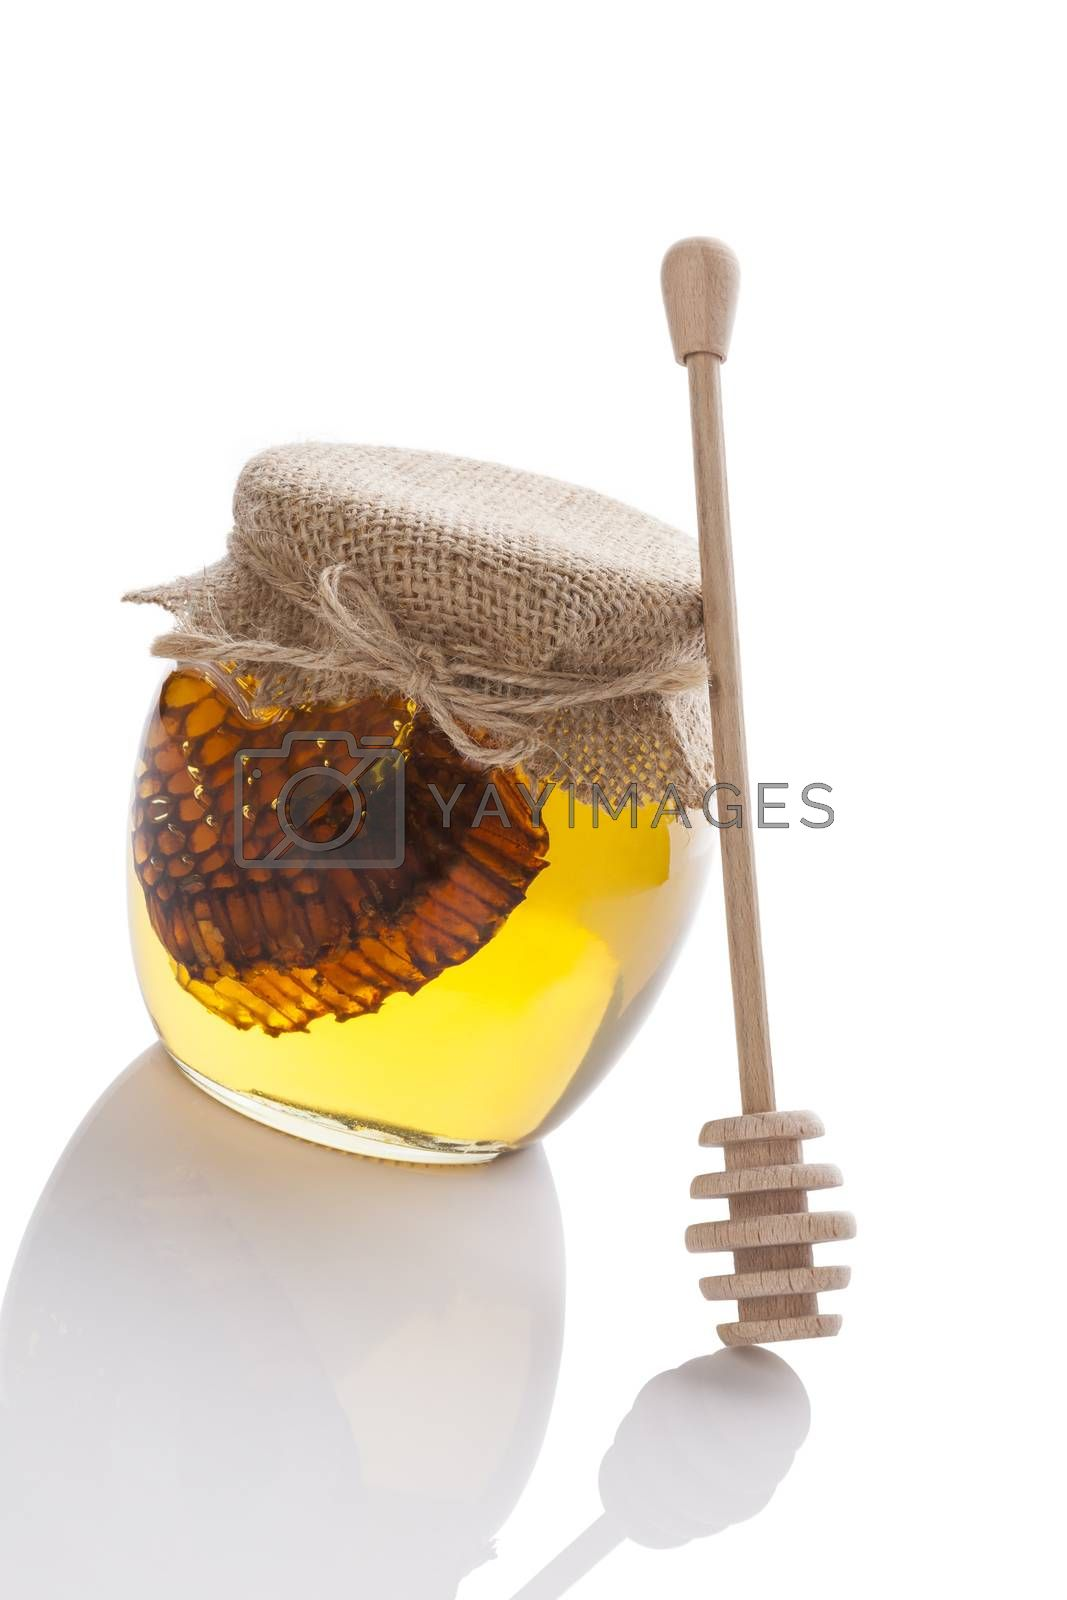 Golden honey with bee comb and wooden drizzler isolated on white background. Organic healthy natural sweetener.